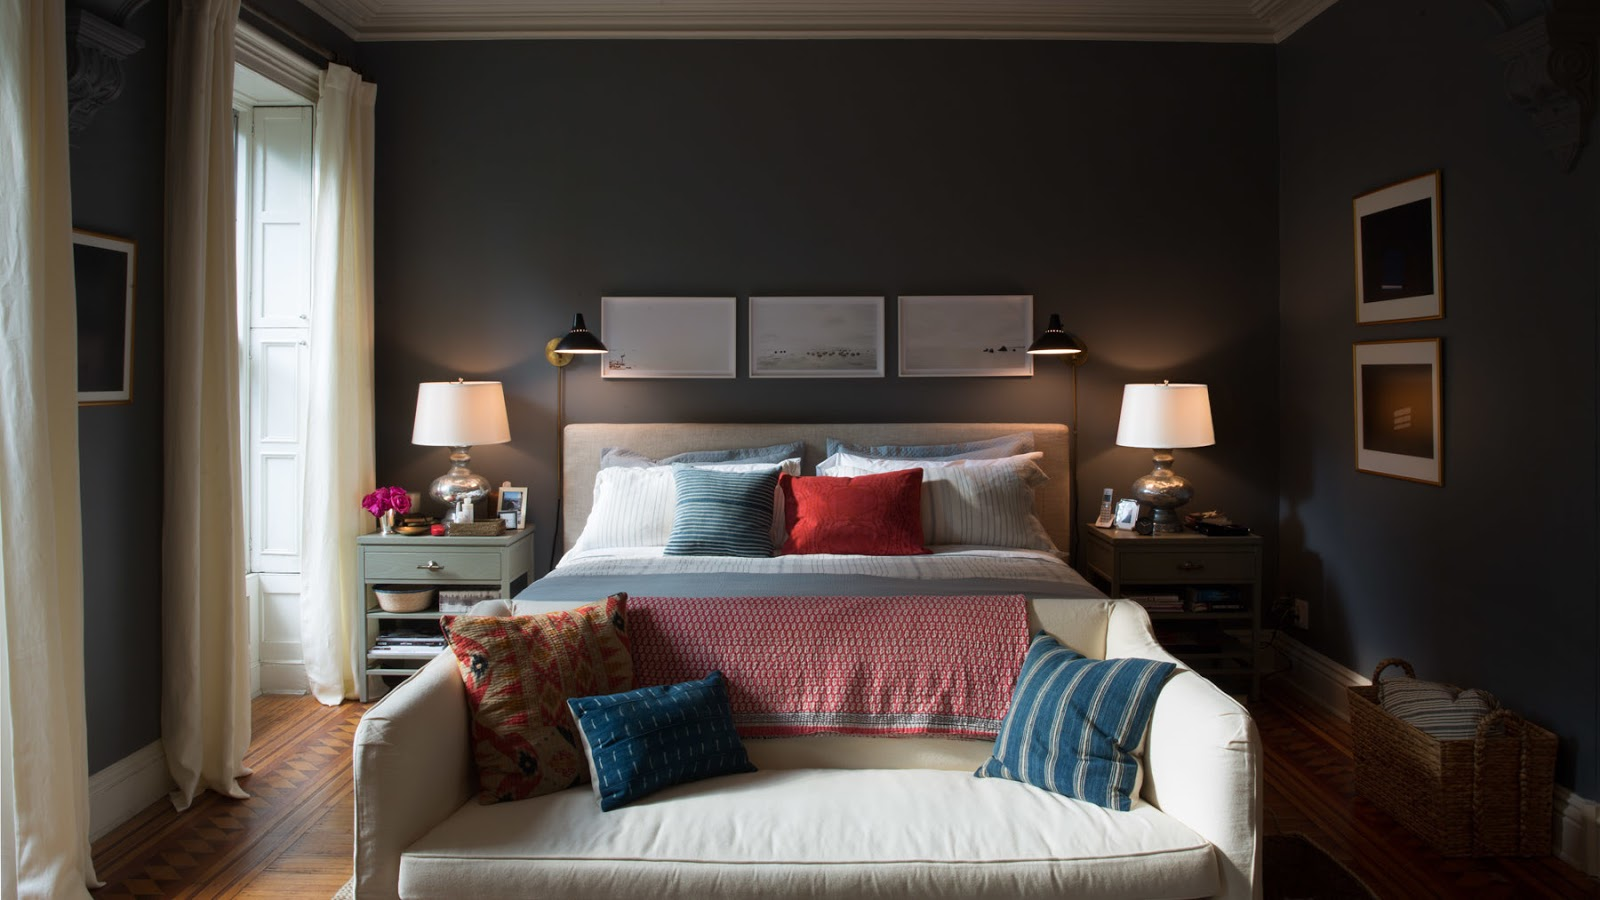 Juless Bedroom In The Intern Designed By Nancy Meyers Via Architectural Digest